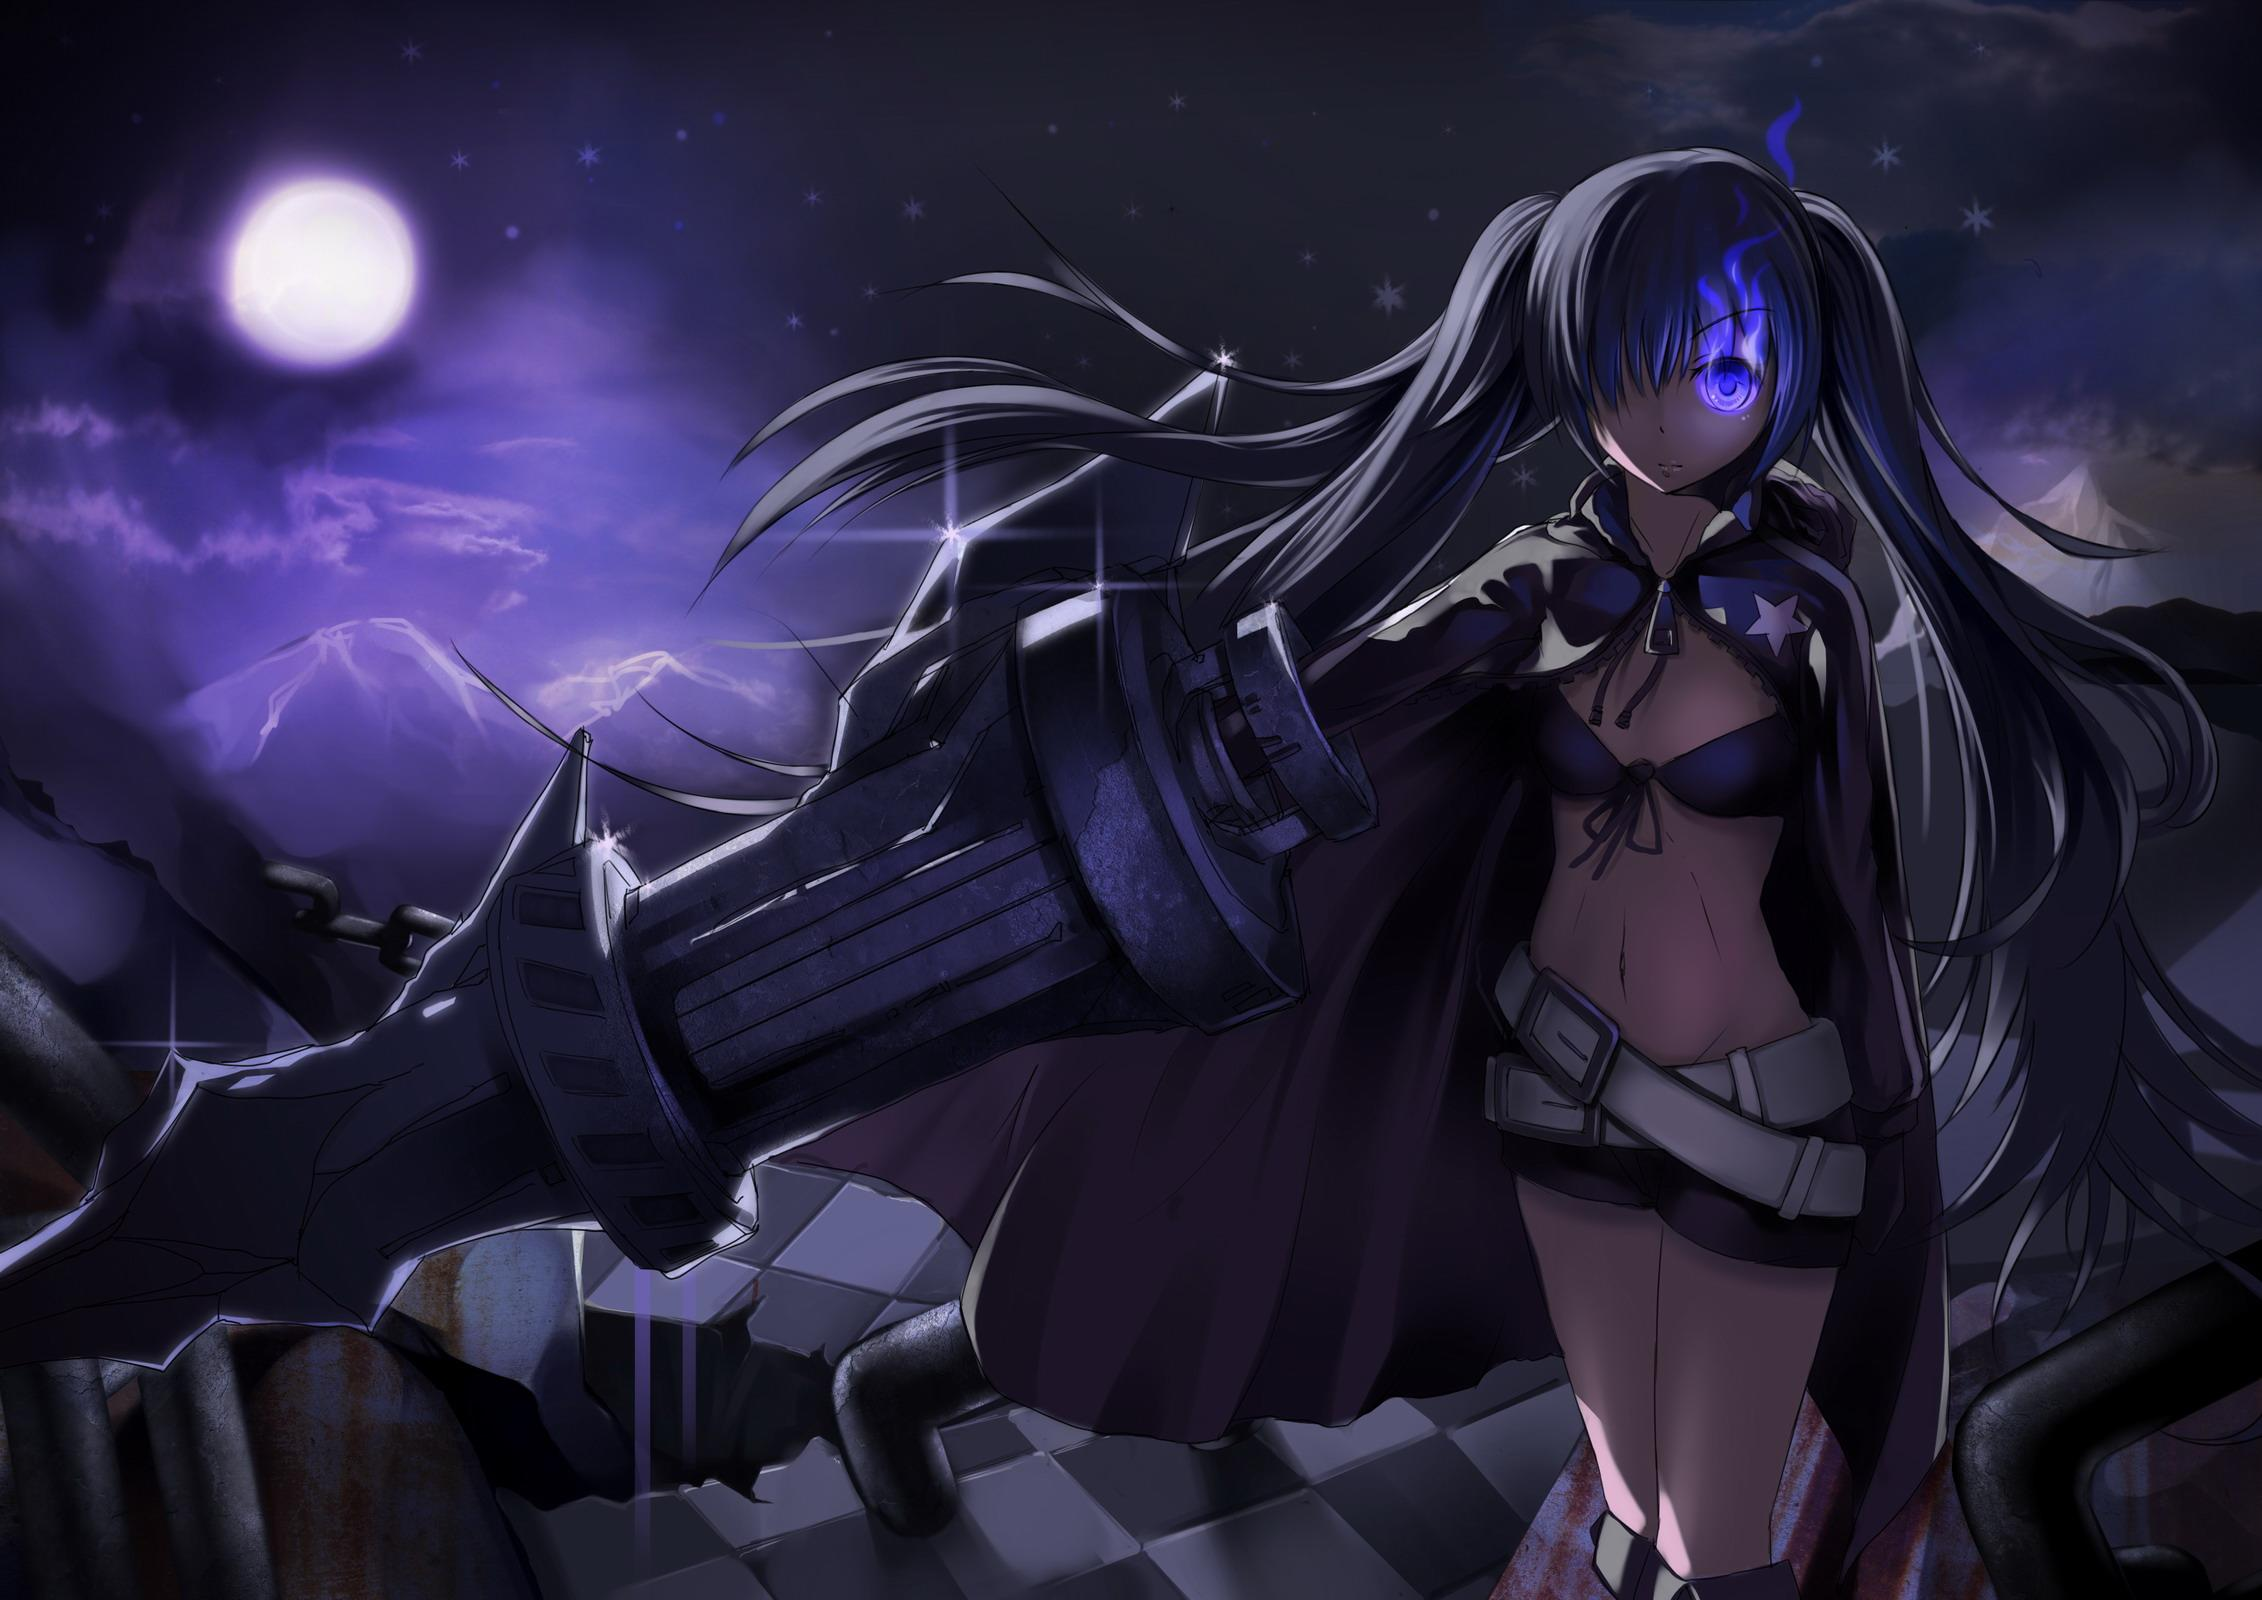 Insane 3d Anime Wallpapers - Wallpaper Cave